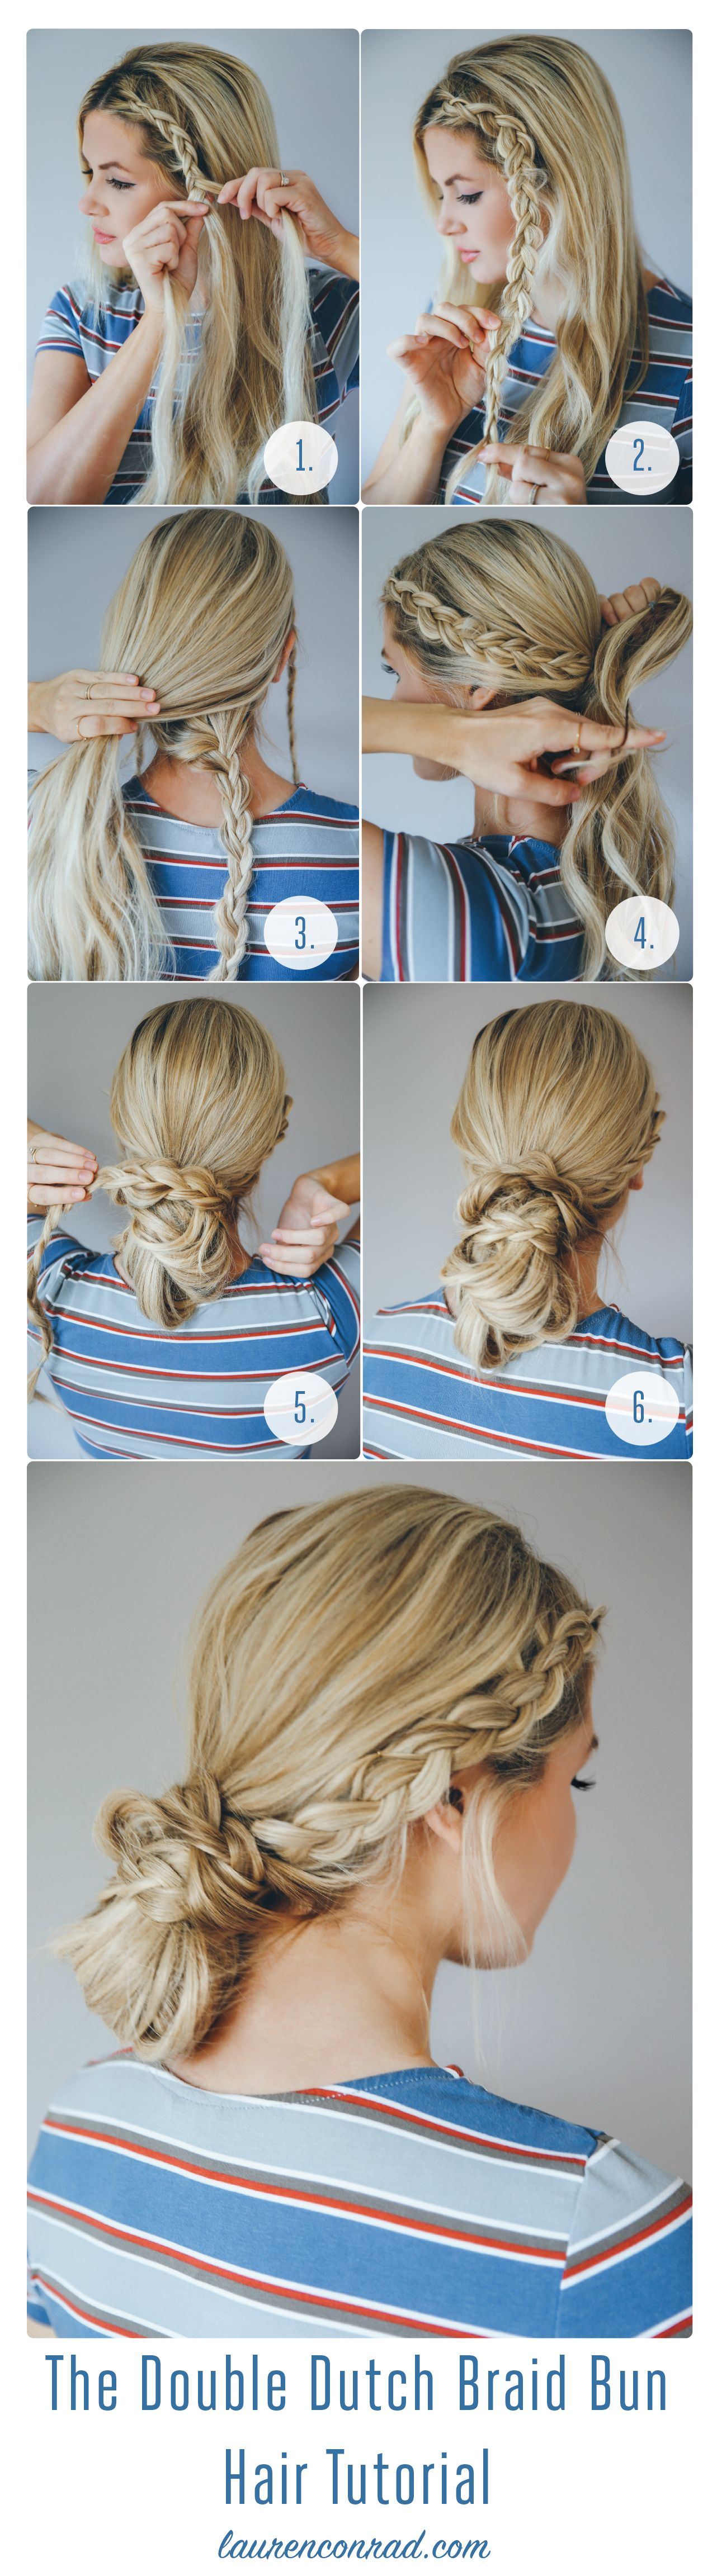 Hair howto the double dutch braid bun dutch braid bun braided